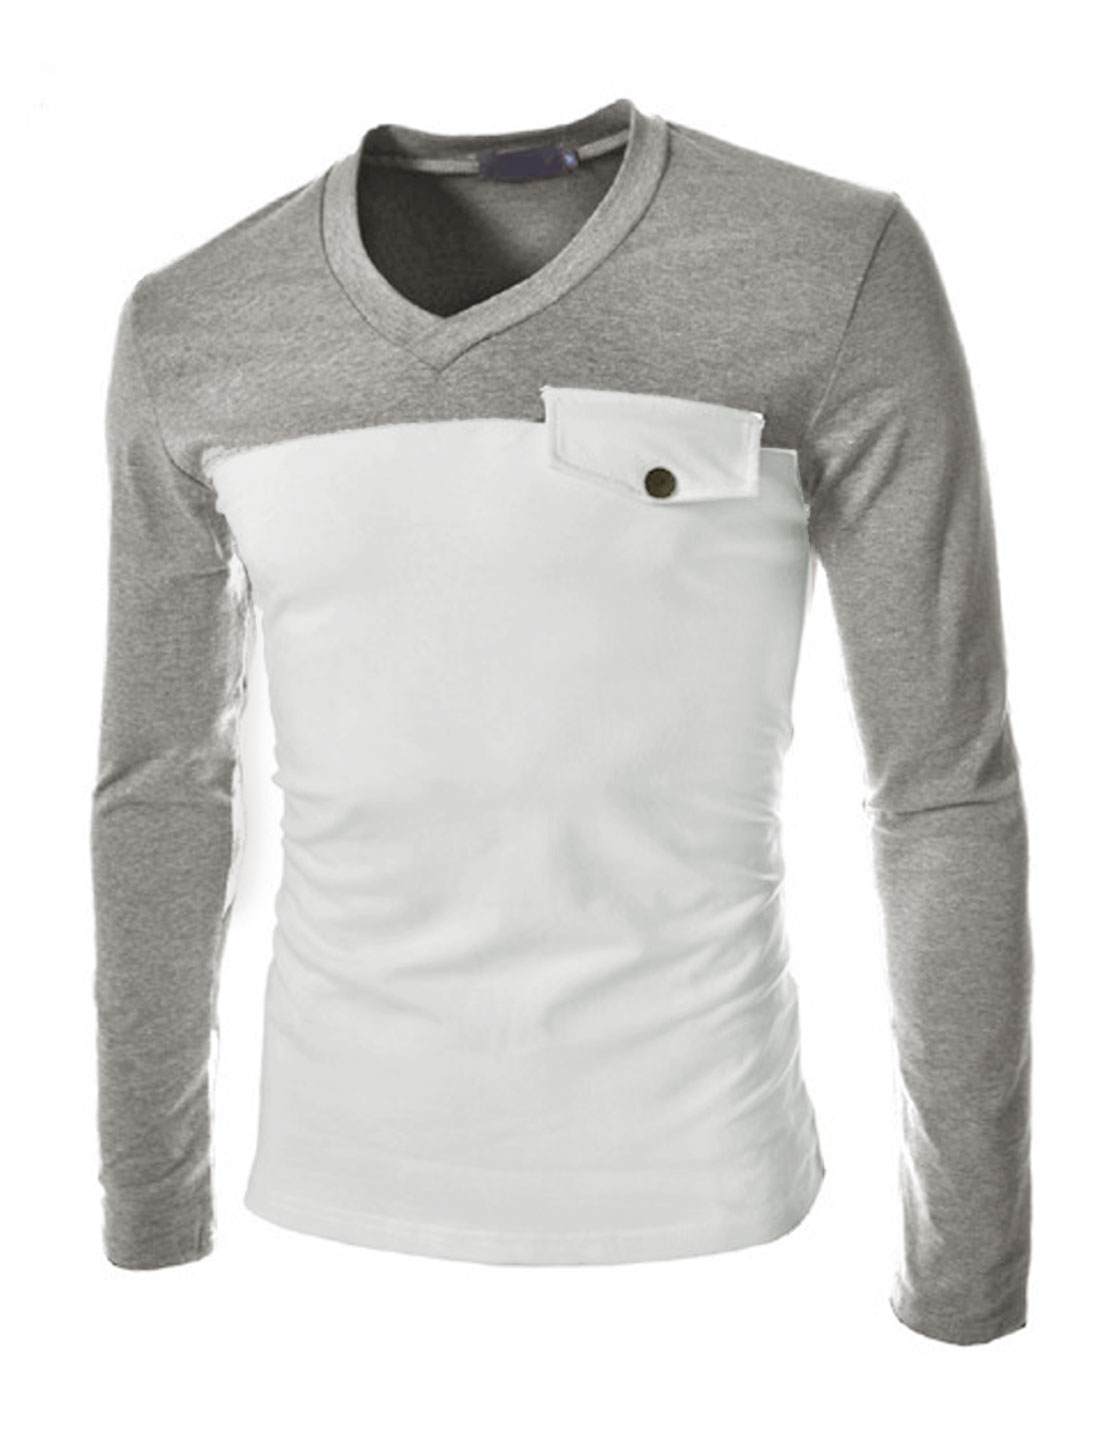 Mens Long Sleeve V Neck Color Block Slim Fit Casual Tee Gray White M